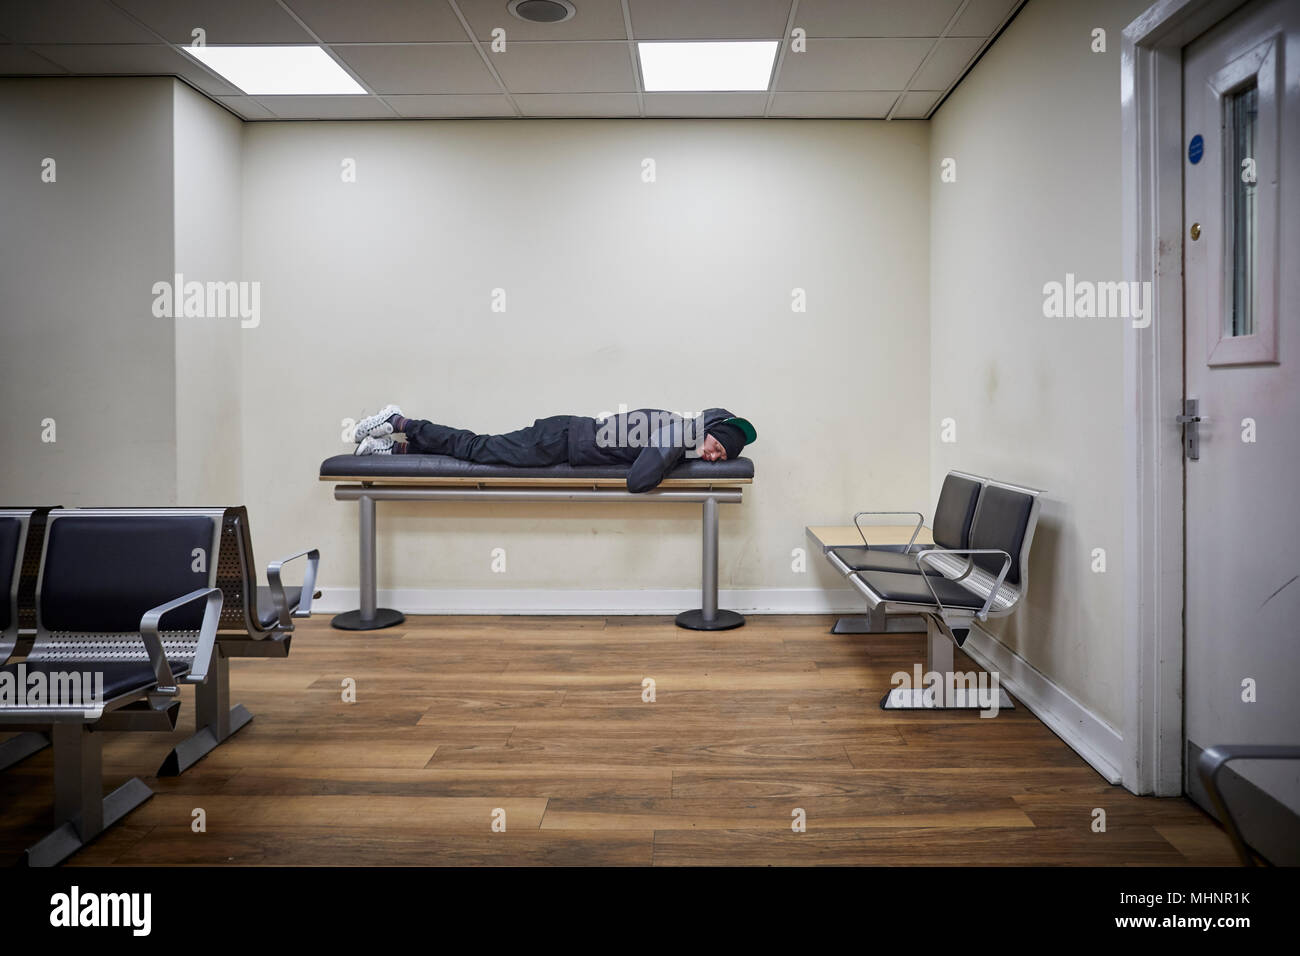 Glasgow in Scotland, Glasgow Central man sleeps on bench in waiting room - Stock Image